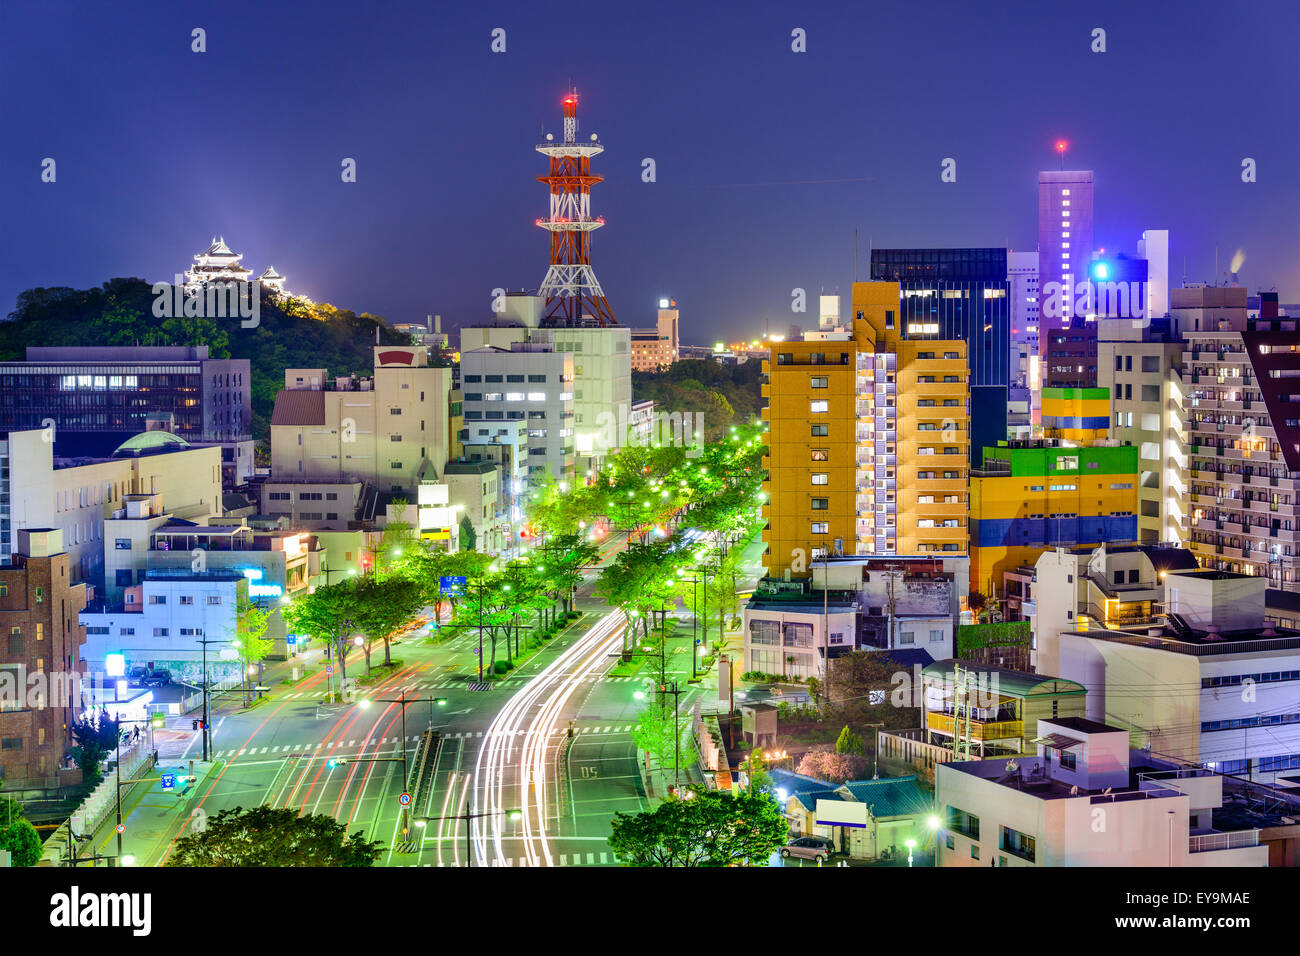 Wakayama City, Japan downtown skyline. - Stock Image